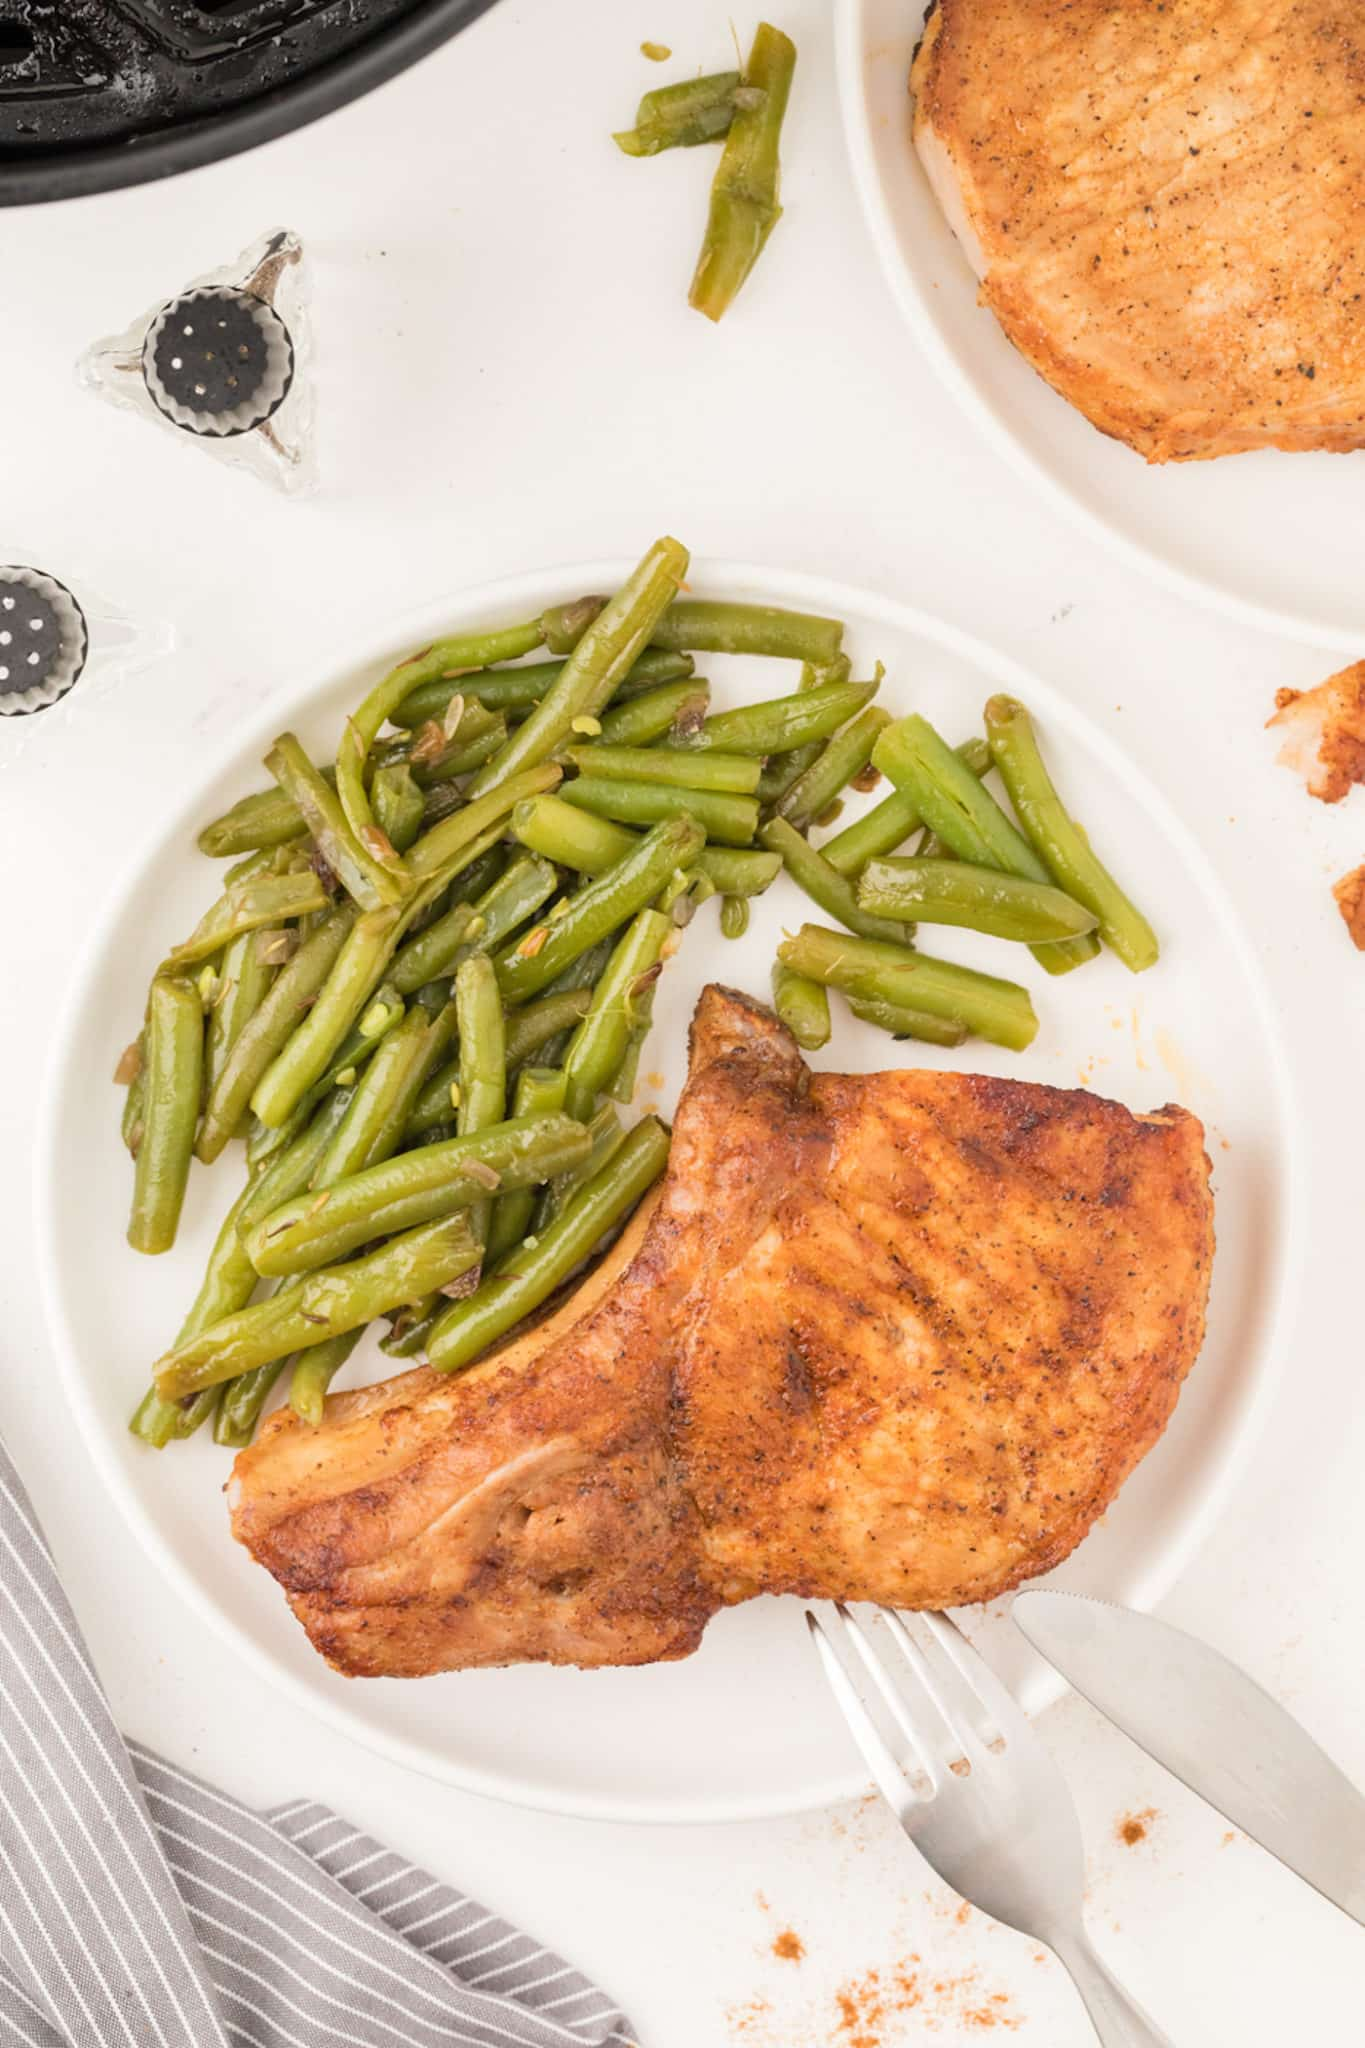 pork chops served on a plate with green beans